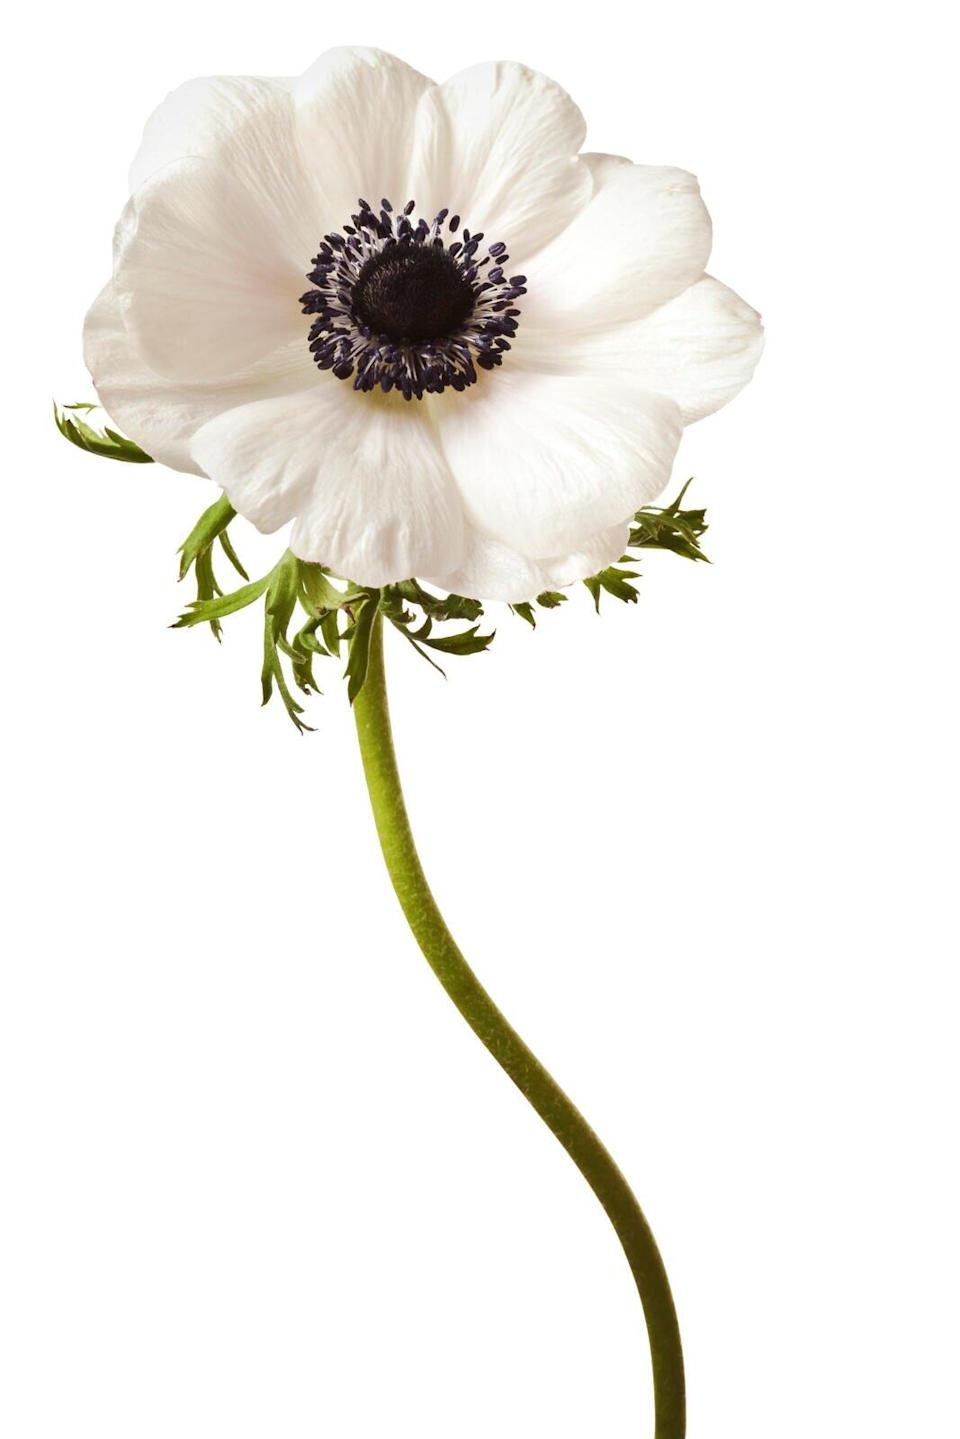 Anemone Flower Care Tips